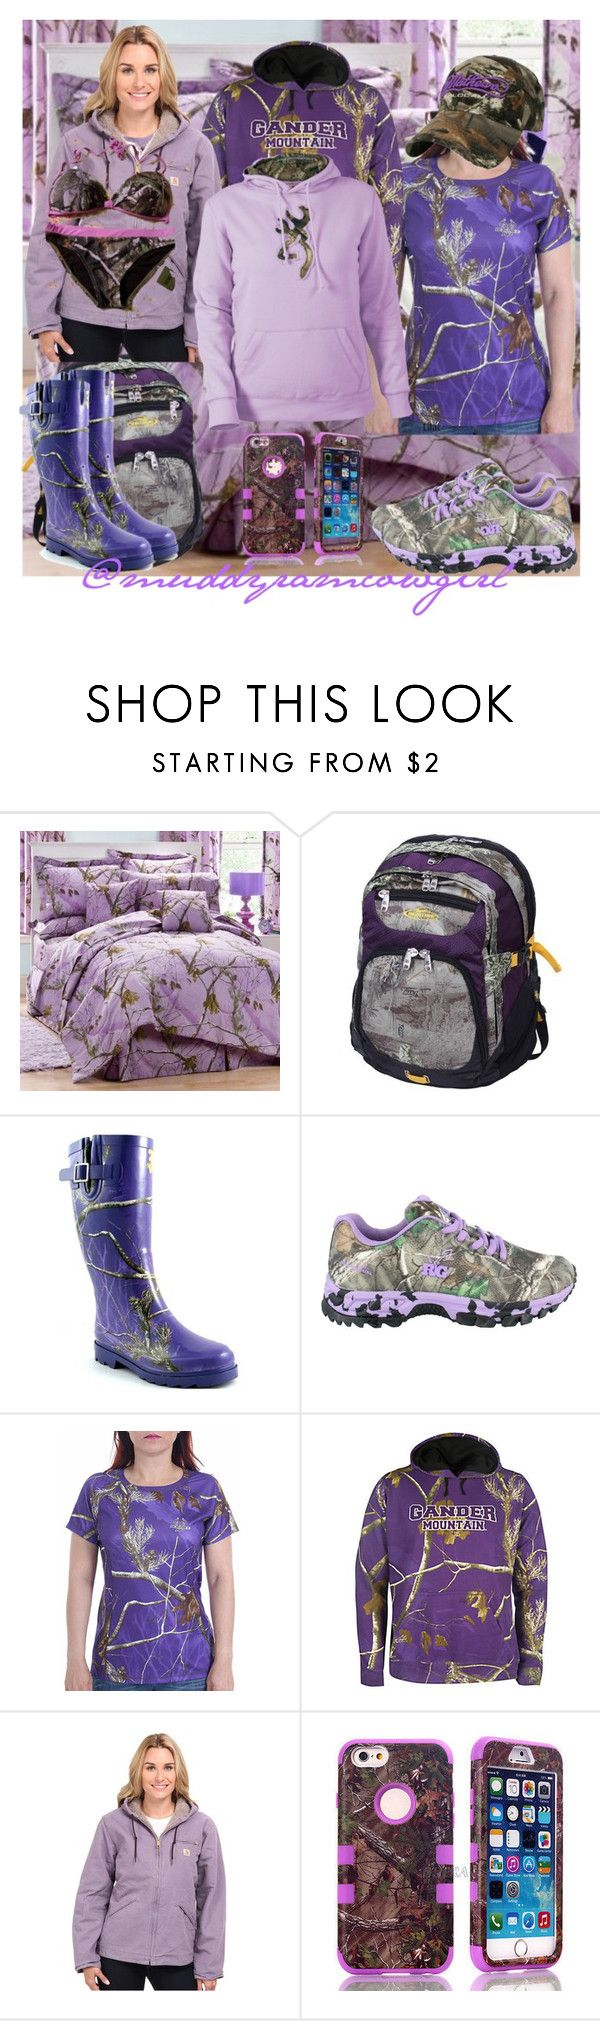 """""""Purple Realtree"""" by muddyramcowgirl ❤ liked on Polyvore featuring Realtree, Carhartt and plus size clothing"""